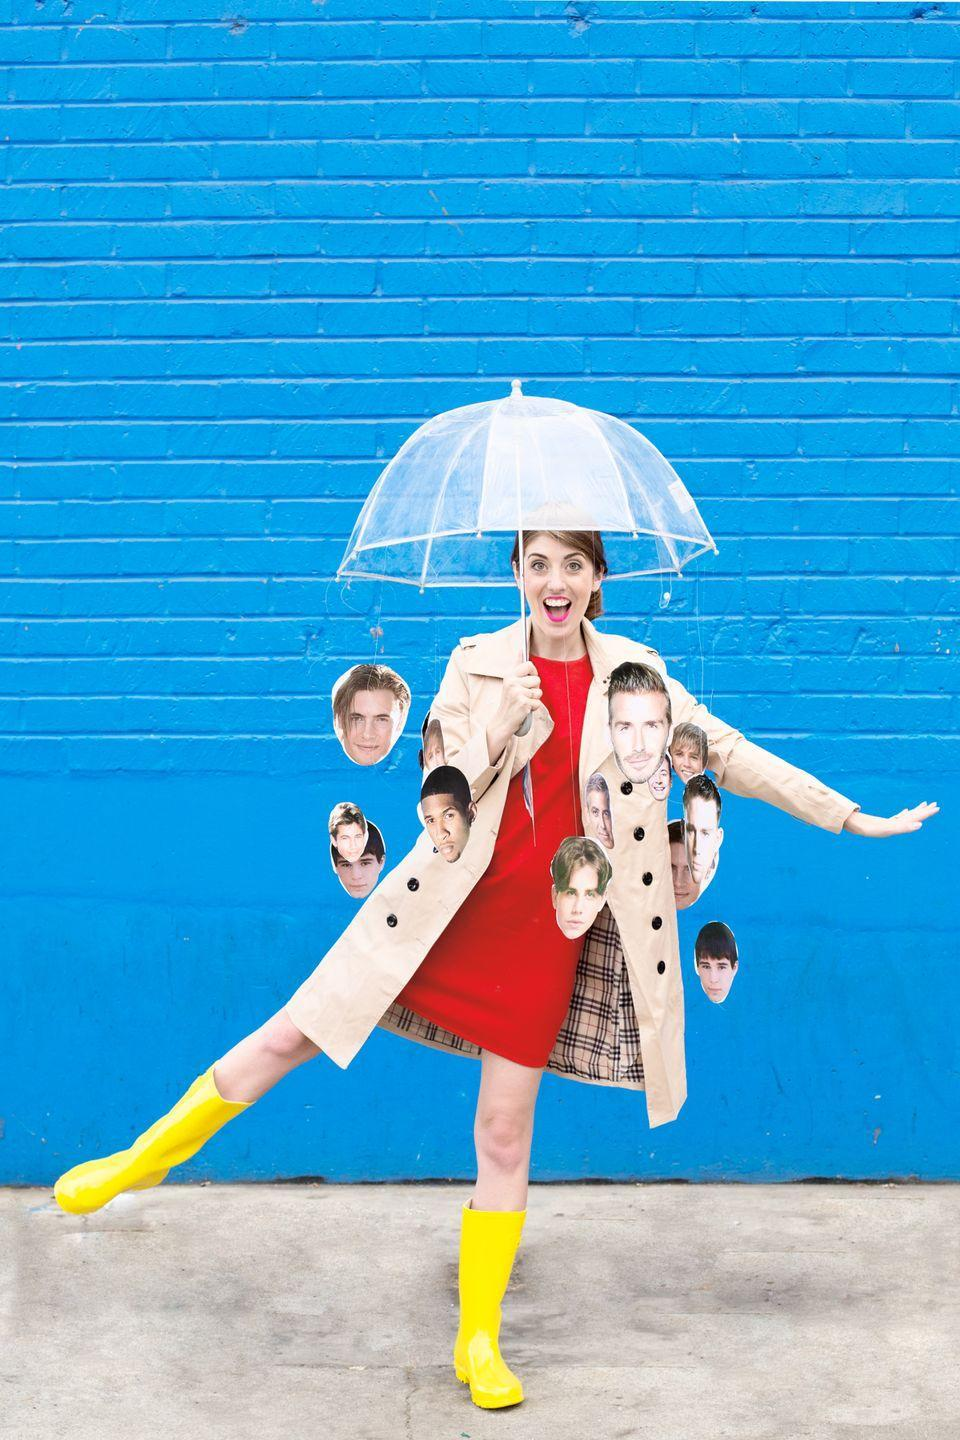 """<p>Hallelujah, here's a costume that's weather-proof <em>and</em> will inspire a night of karaoke. Tape cutouts of your favorite guys — George Clooney, Prince Harry, to list a few — to a clear umbrella, then wear rain boots and a trench coat to complete the look. </p><p><a class=""""link rapid-noclick-resp"""" href=""""https://www.amazon.com/Totes-Luggage-Bubble-Umbrella-Clear/dp/B000YB7T04/ref=sr_1_1?tag=syn-yahoo-20&ascsubtag=%5Bartid%7C10055.g.2750%5Bsrc%7Cyahoo-us"""" rel=""""nofollow noopener"""" target=""""_blank"""" data-ylk=""""slk:SHOP CLEAR UMBRELLAS"""">SHOP CLEAR UMBRELLAS</a></p><p><em><a href=""""http://studiodiy.com/2016/10/18/diy-raining-men-costume/"""" rel=""""nofollow noopener"""" target=""""_blank"""" data-ylk=""""slk:See more on Studio DIY »"""" class=""""link rapid-noclick-resp"""">See more on Studio DIY »</a></em> </p>"""